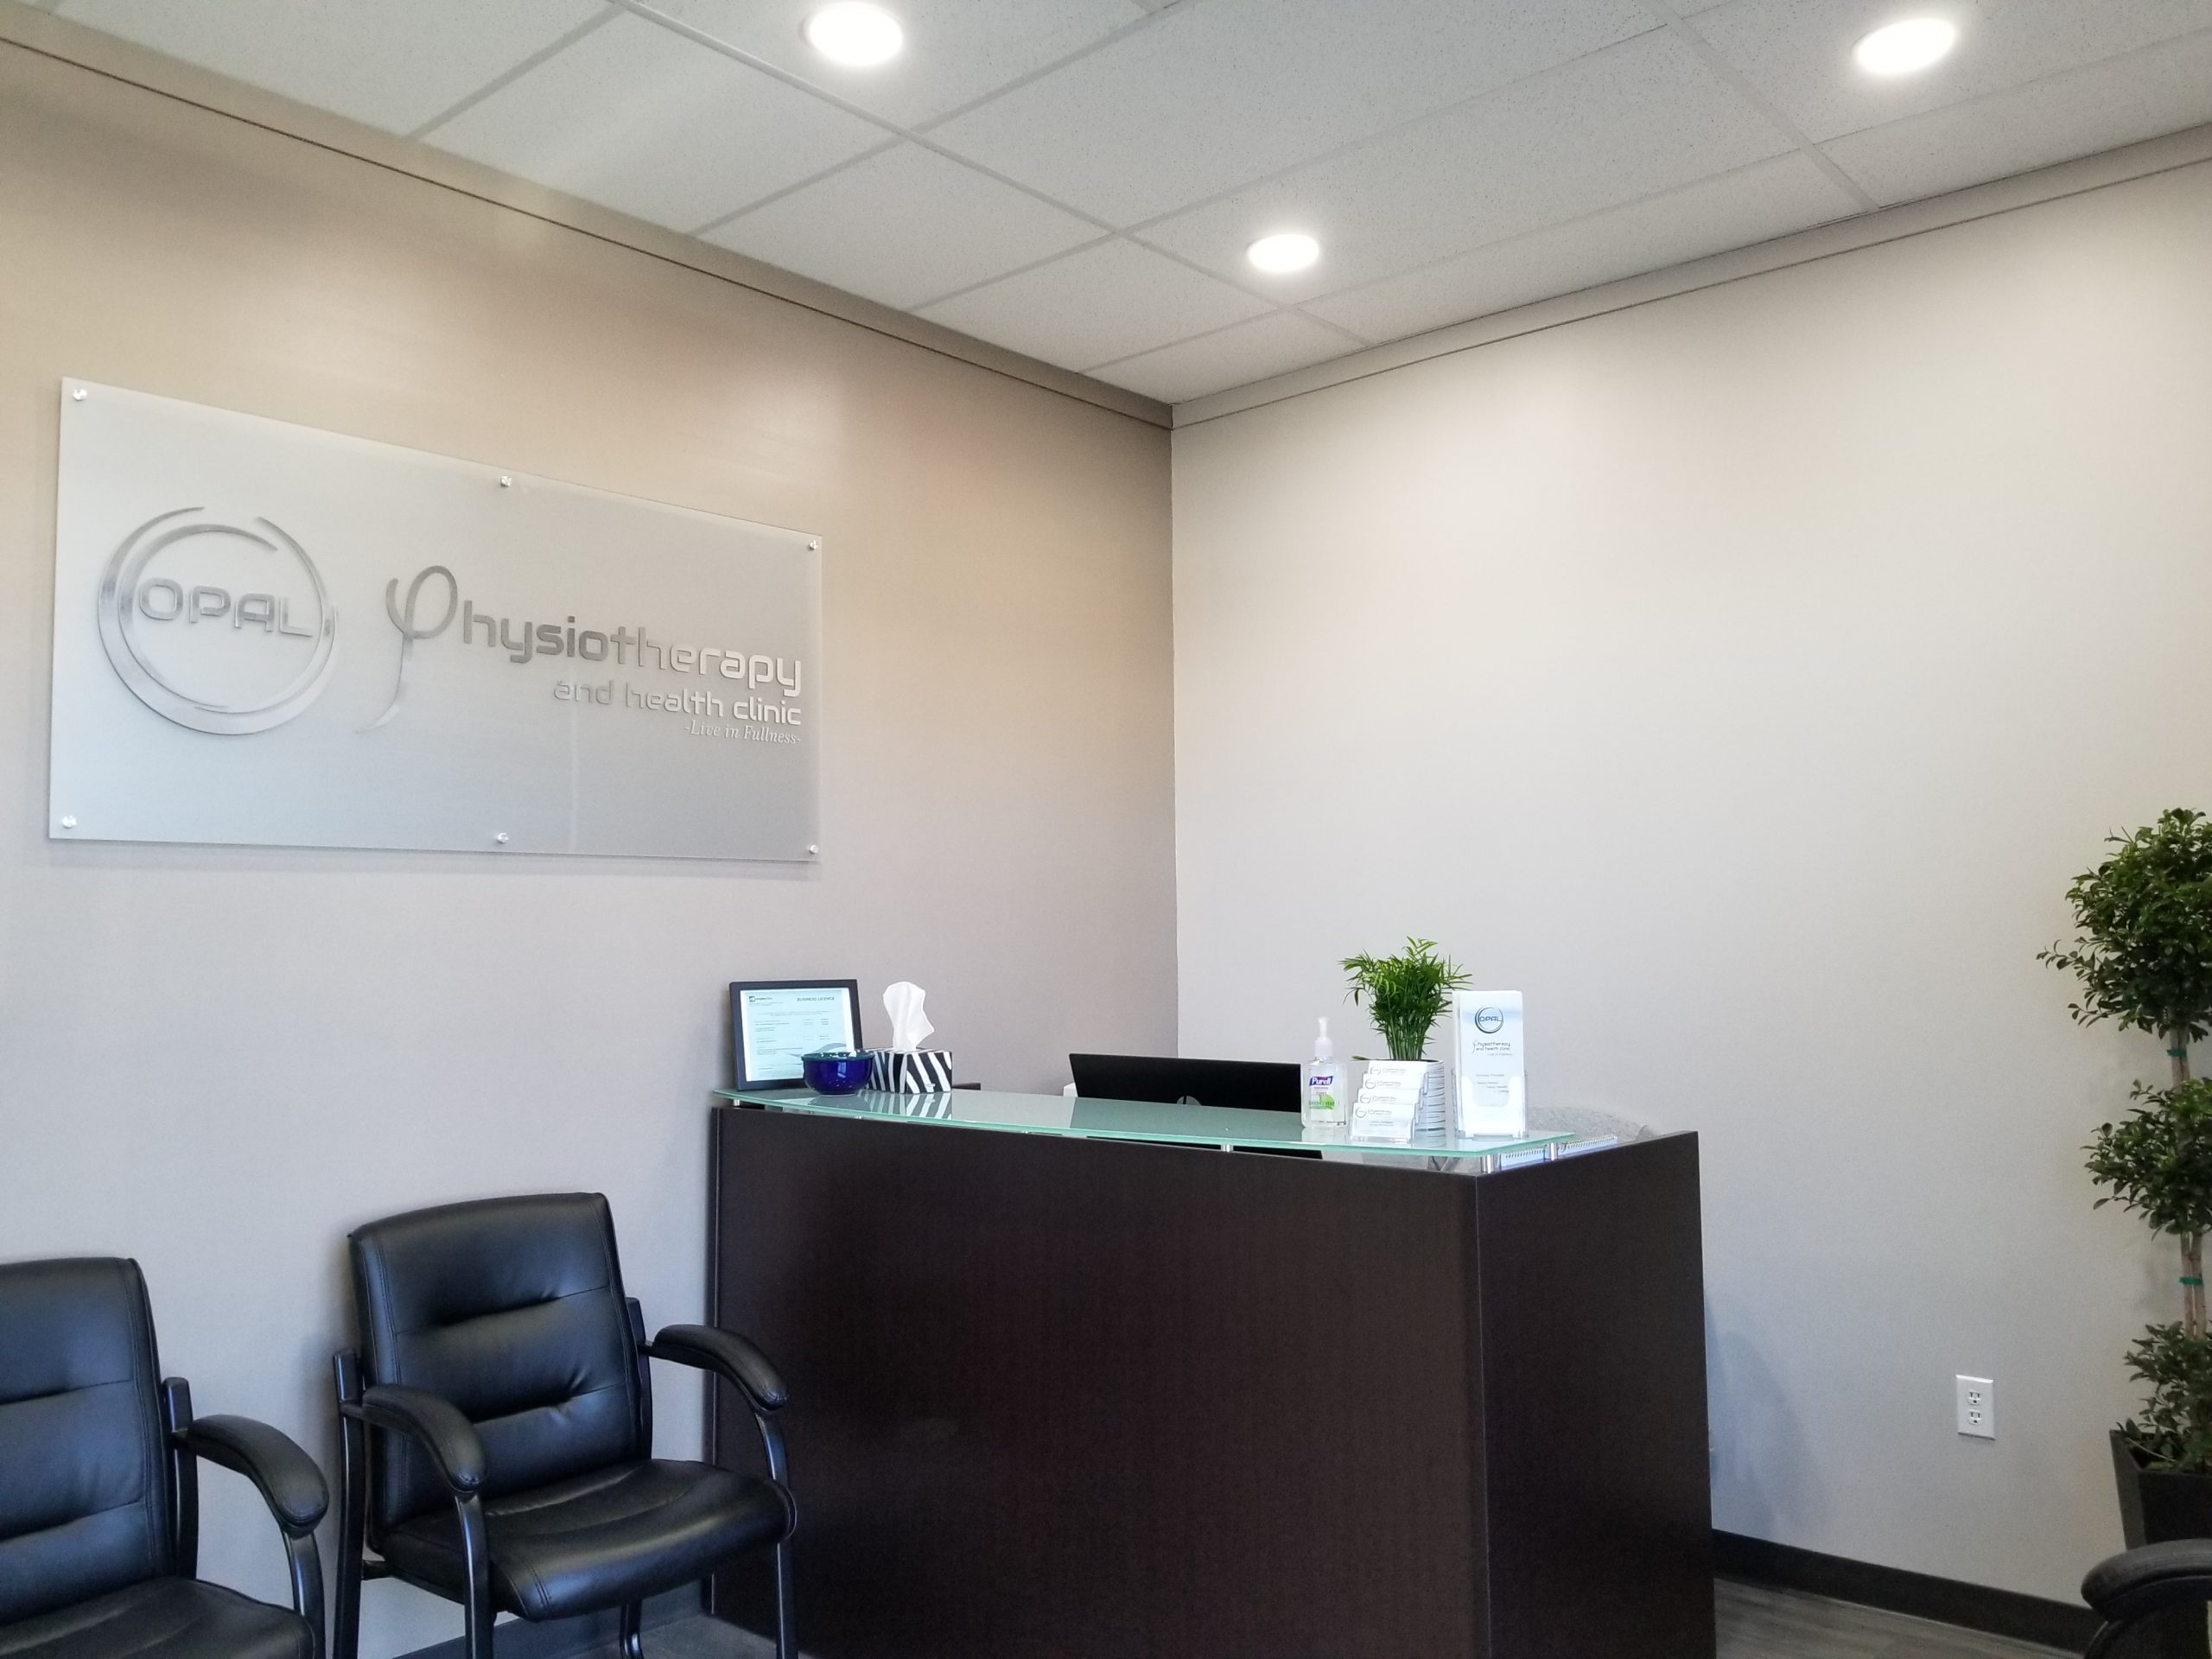 About Opal Physiotherapy